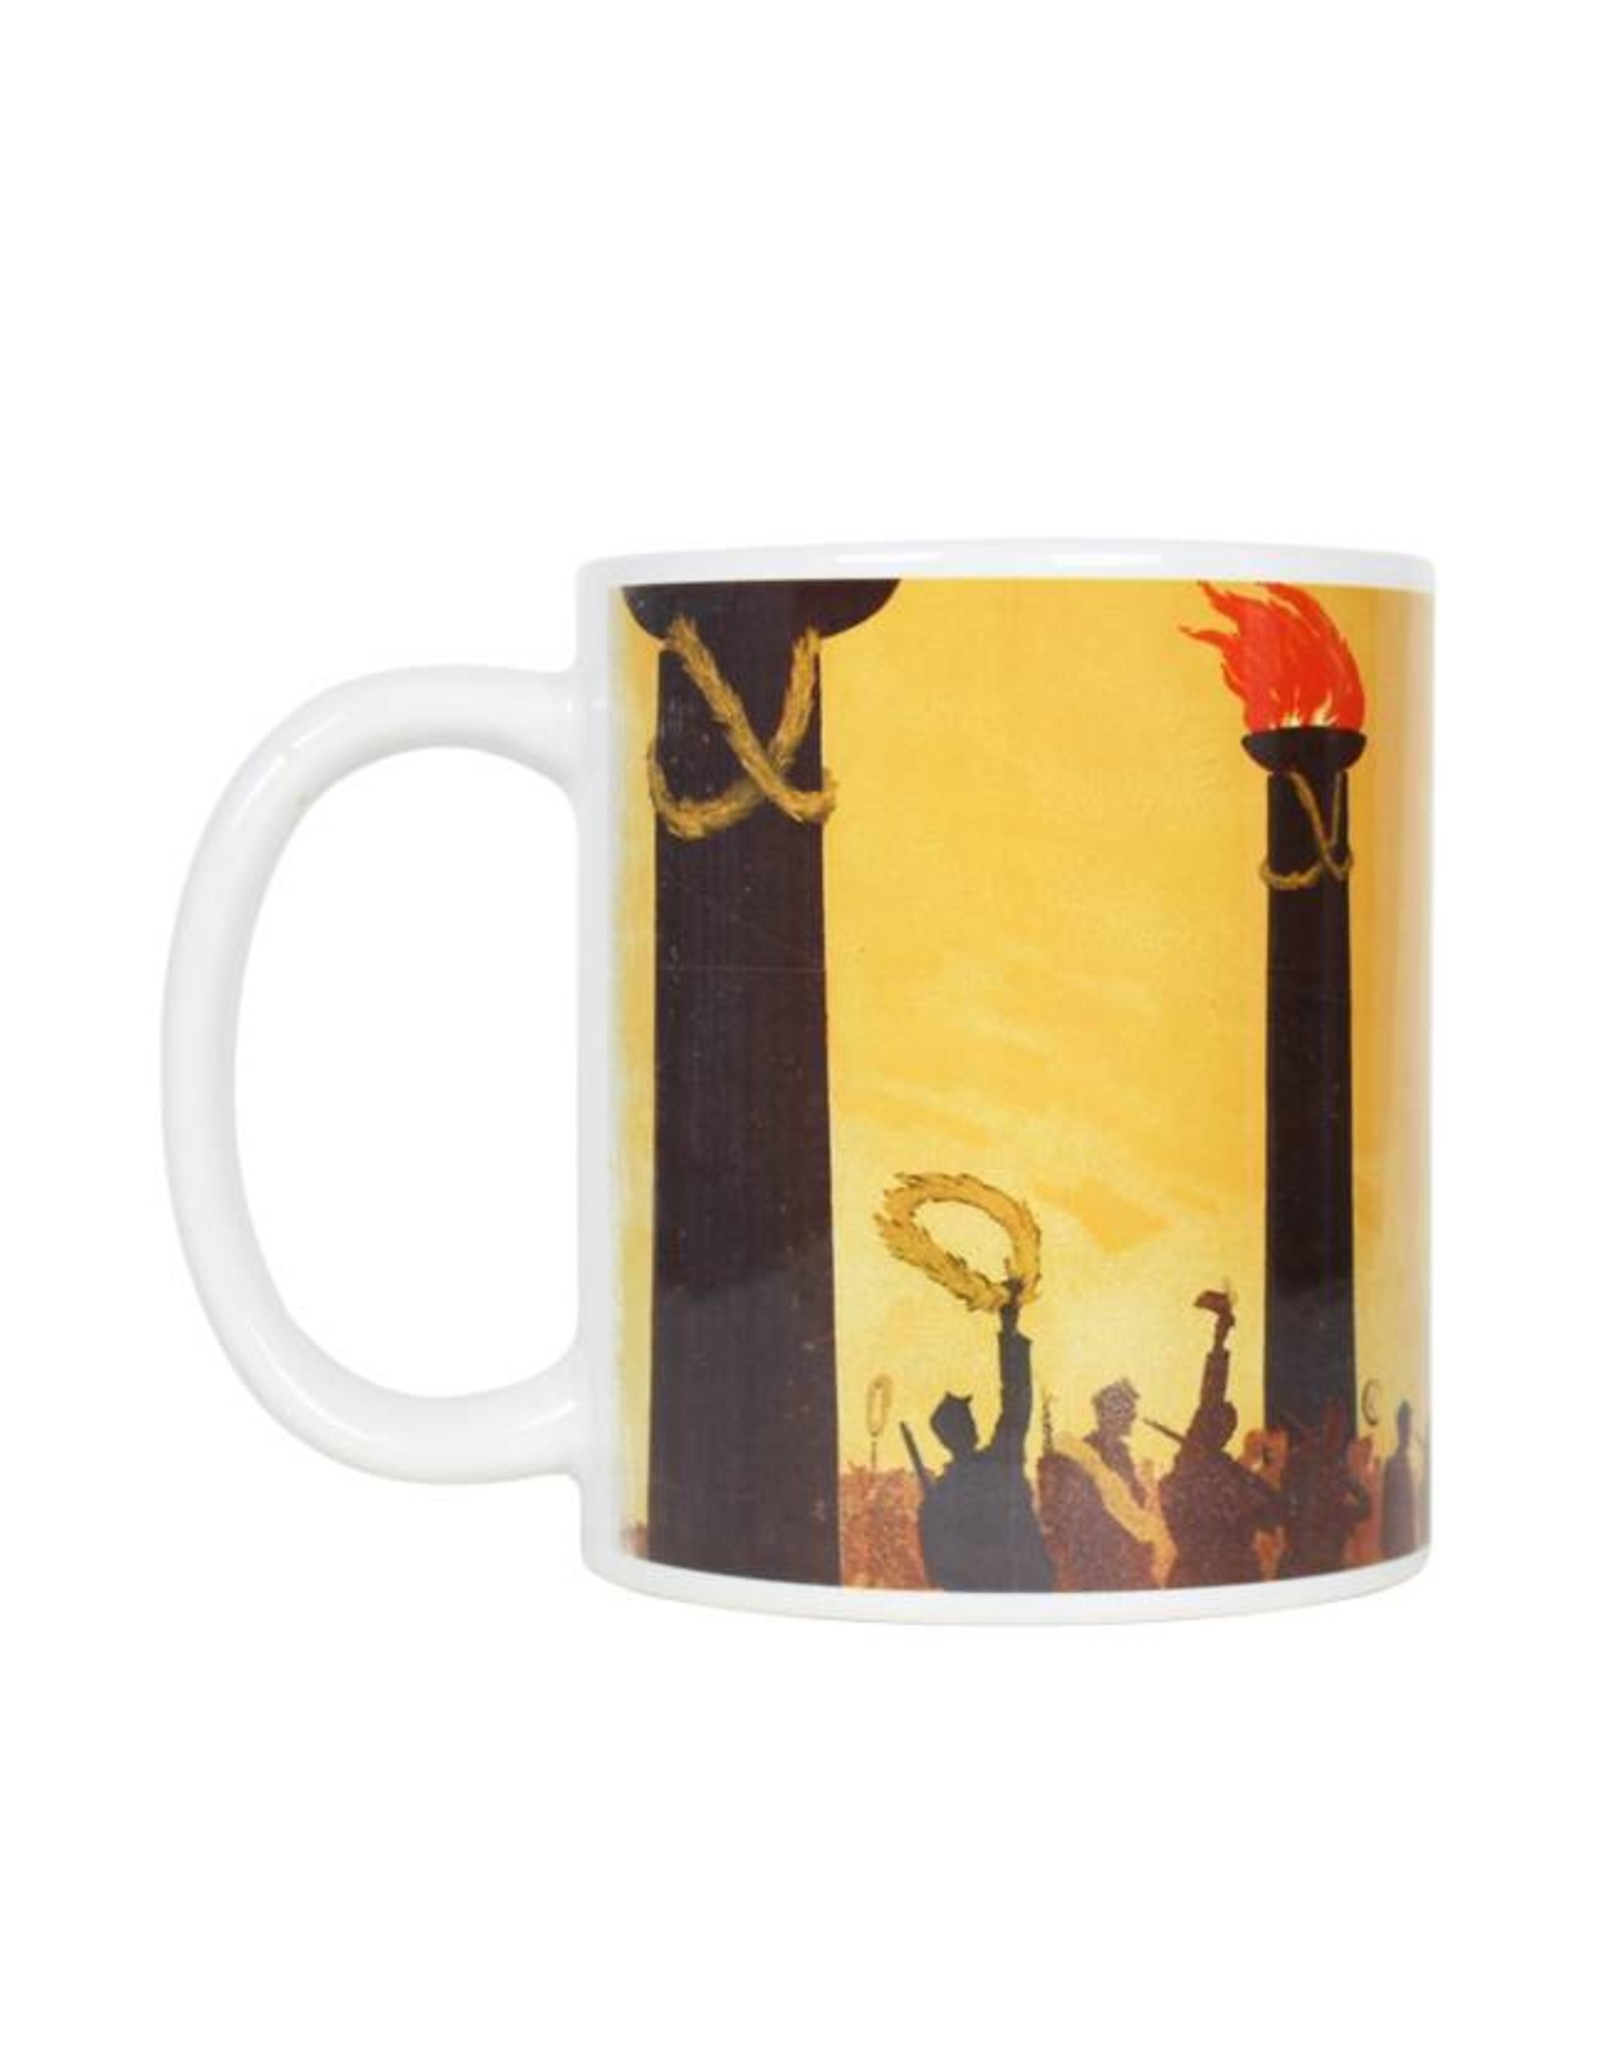 The Woonsocket Revolution Mug